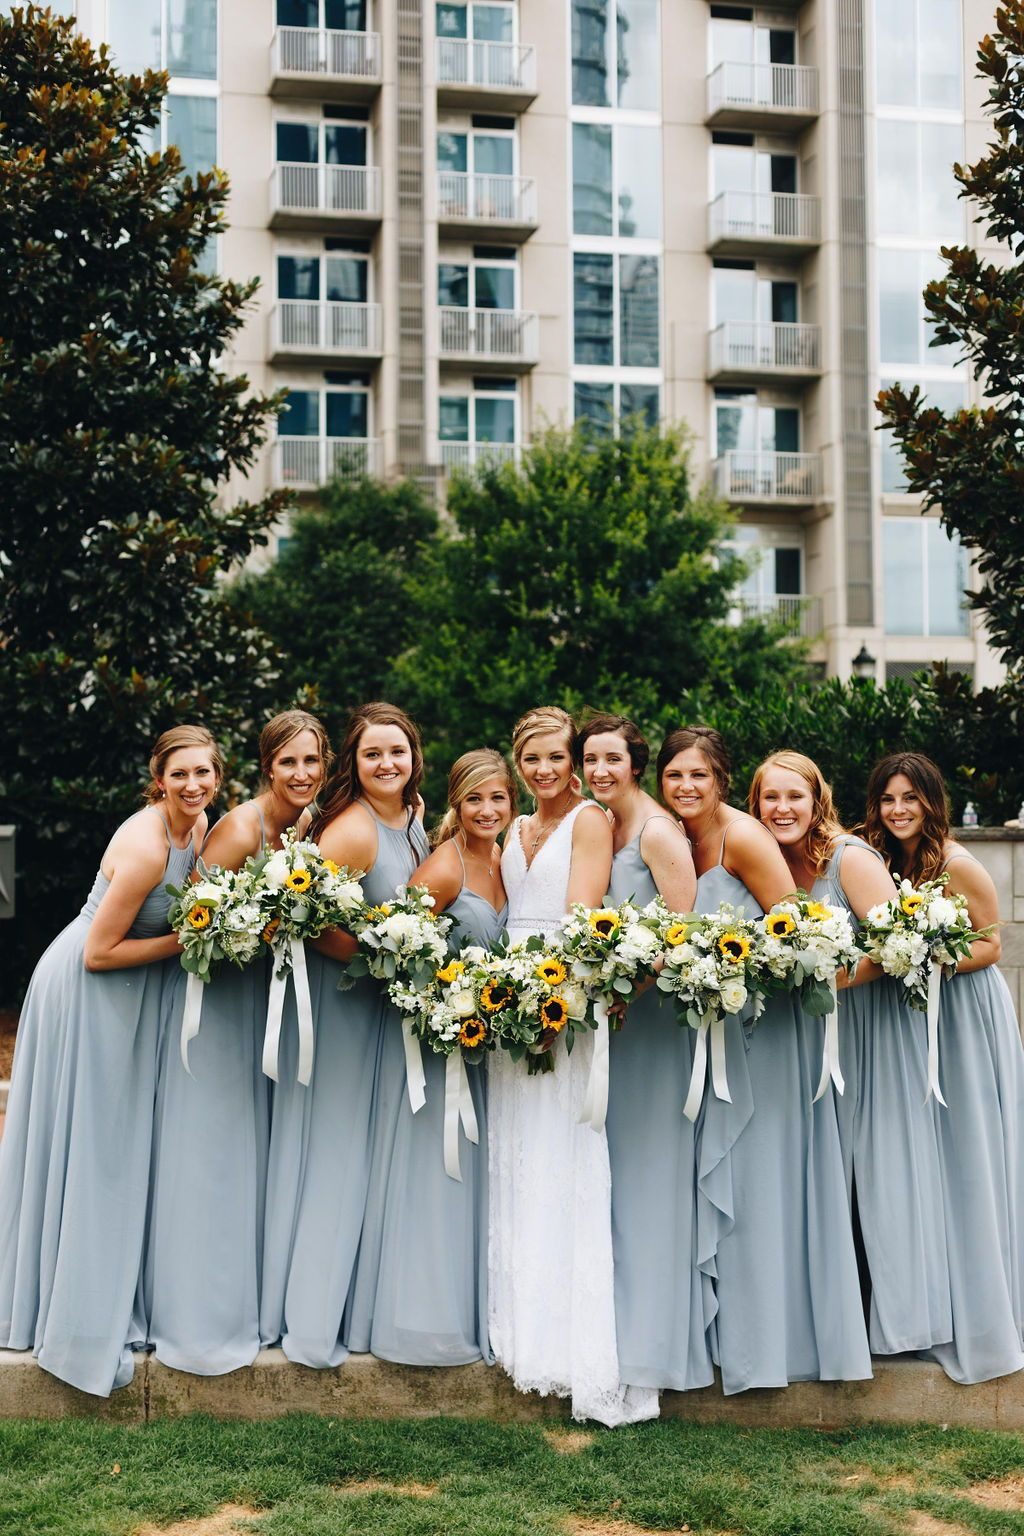 Dusty Blue Wedding With A Classic Style And Summery Whimsical Touch In The Heart Of The C Blue Sunflower Wedding Sunflower Themed Wedding Wedding Themes Summer [ 1536 x 1024 Pixel ]